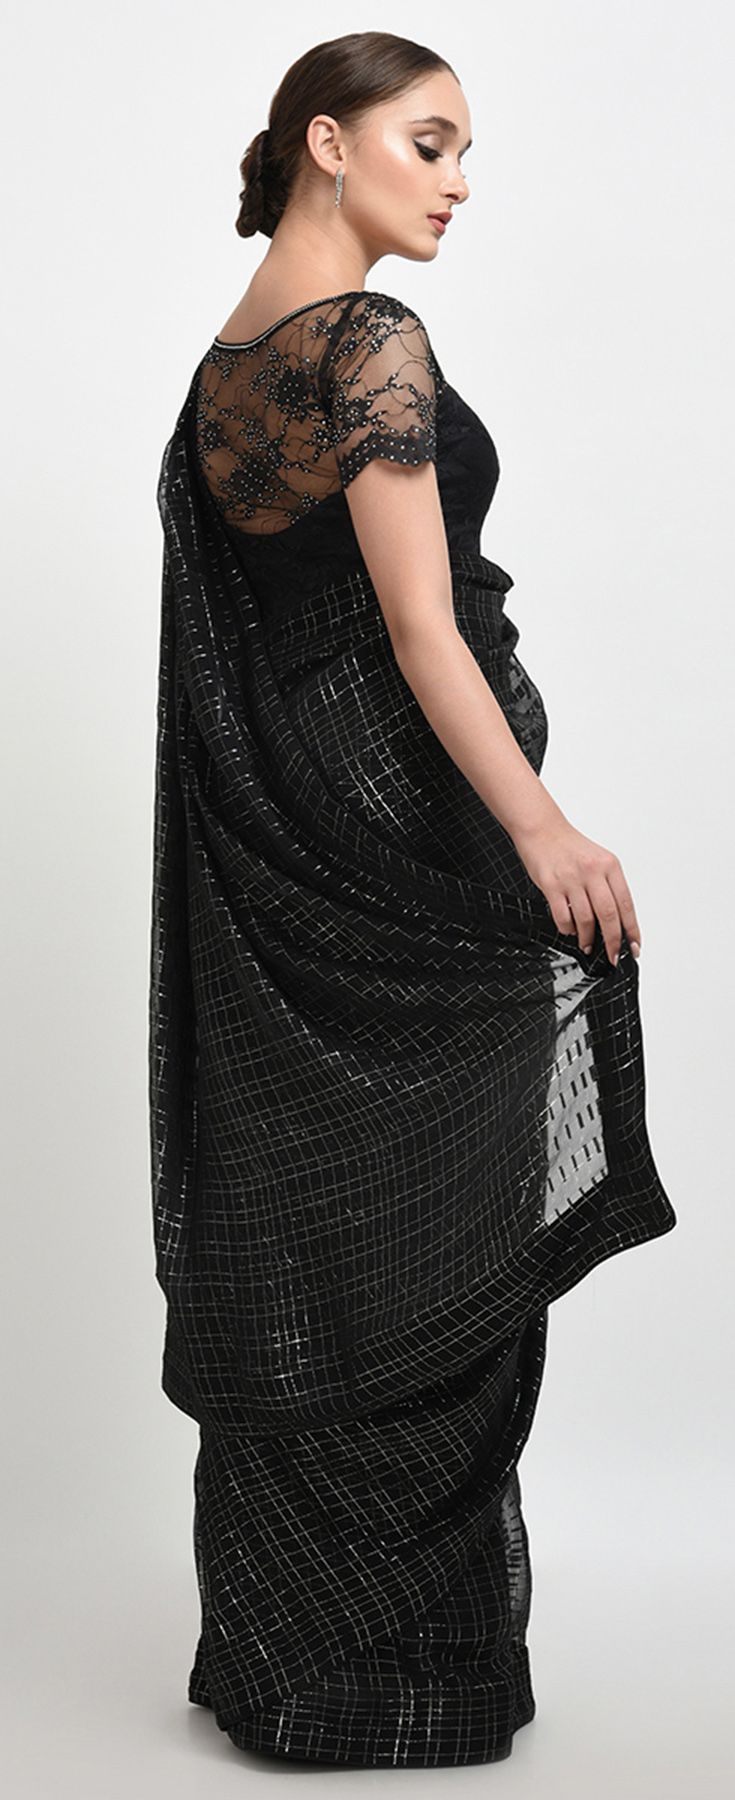 83454c42 French Chiffon Black-Silver Check Saree With Crystal Lace Blouse ...